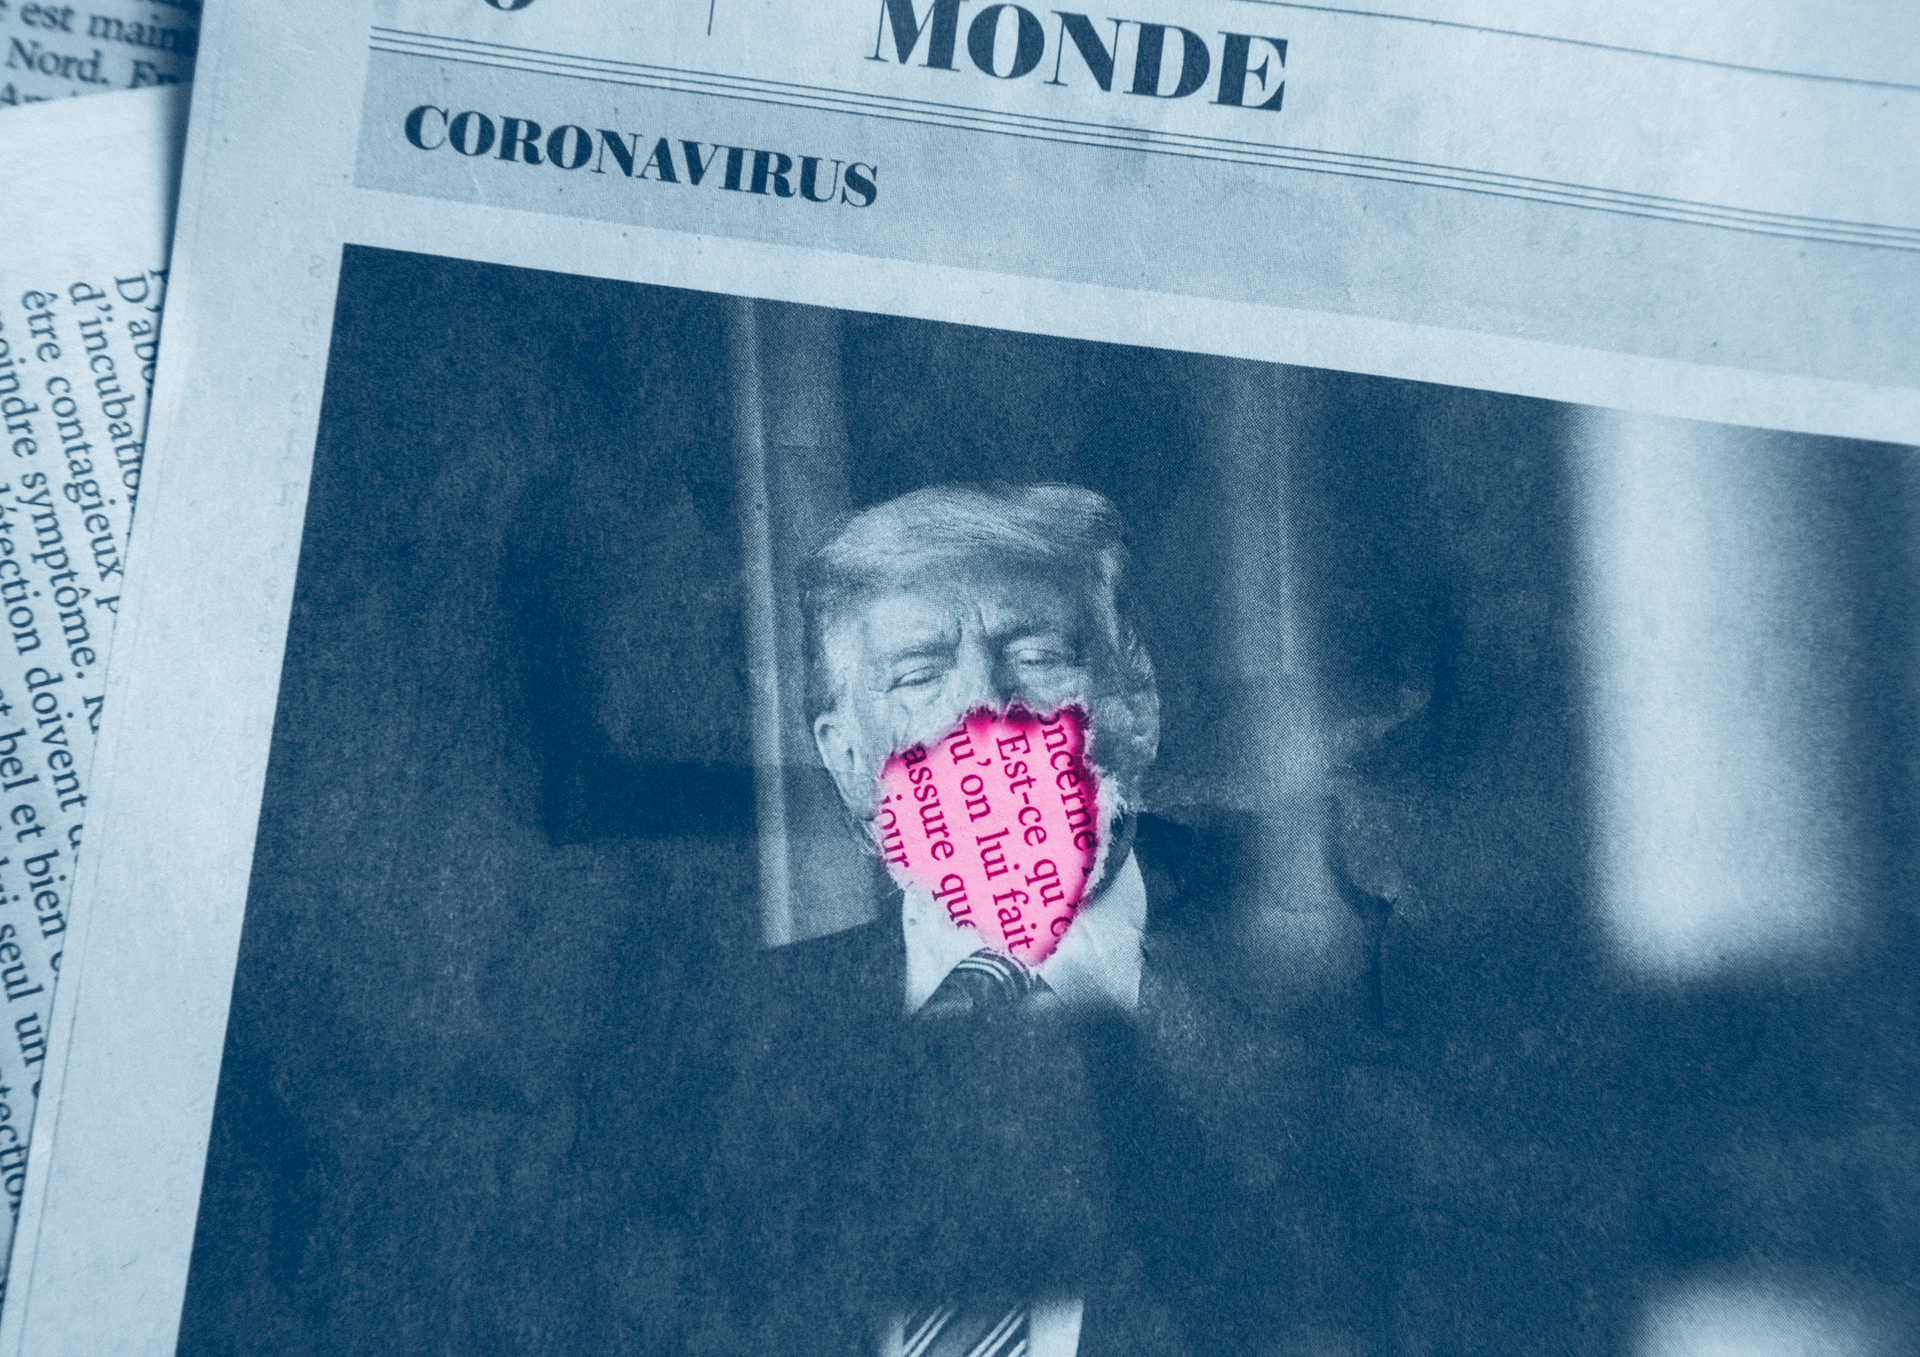 Photo of Donald Trump in a French newspaper